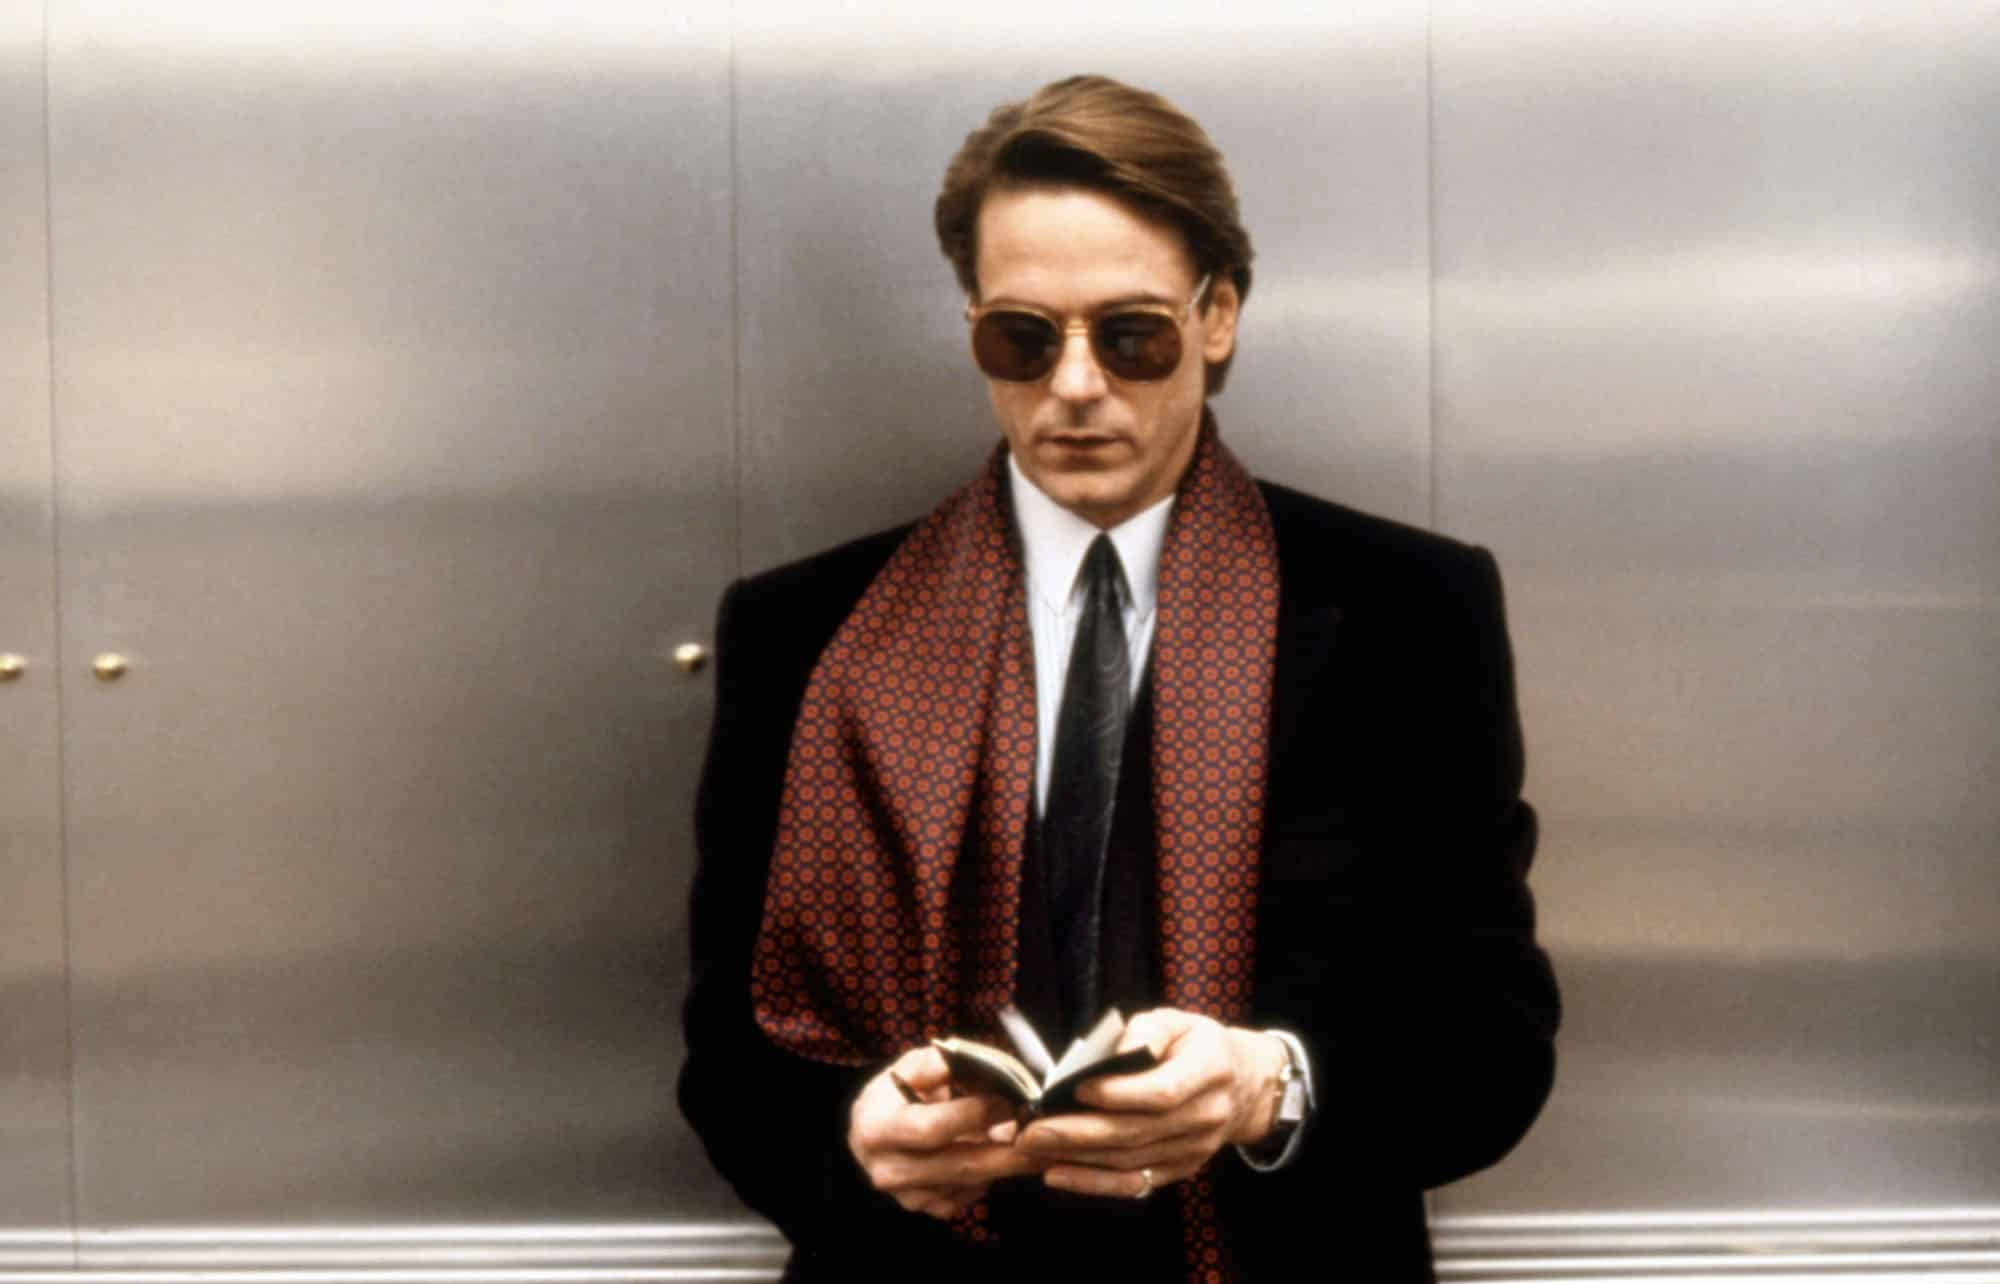 DEAD RINGERS, Jeremy Irons